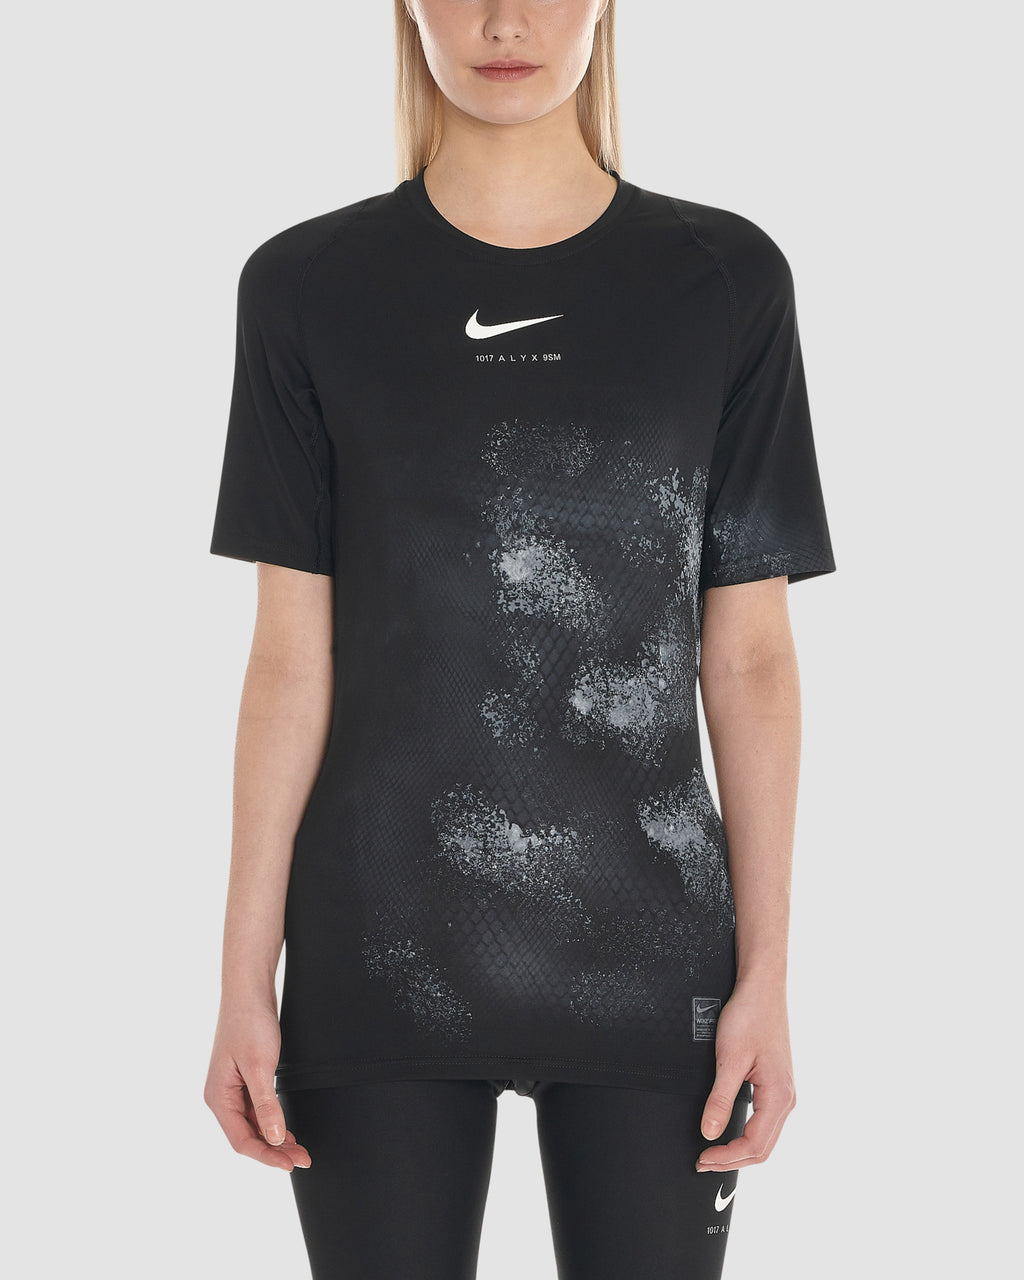 NIKE SS TEE WITH TREATMENT